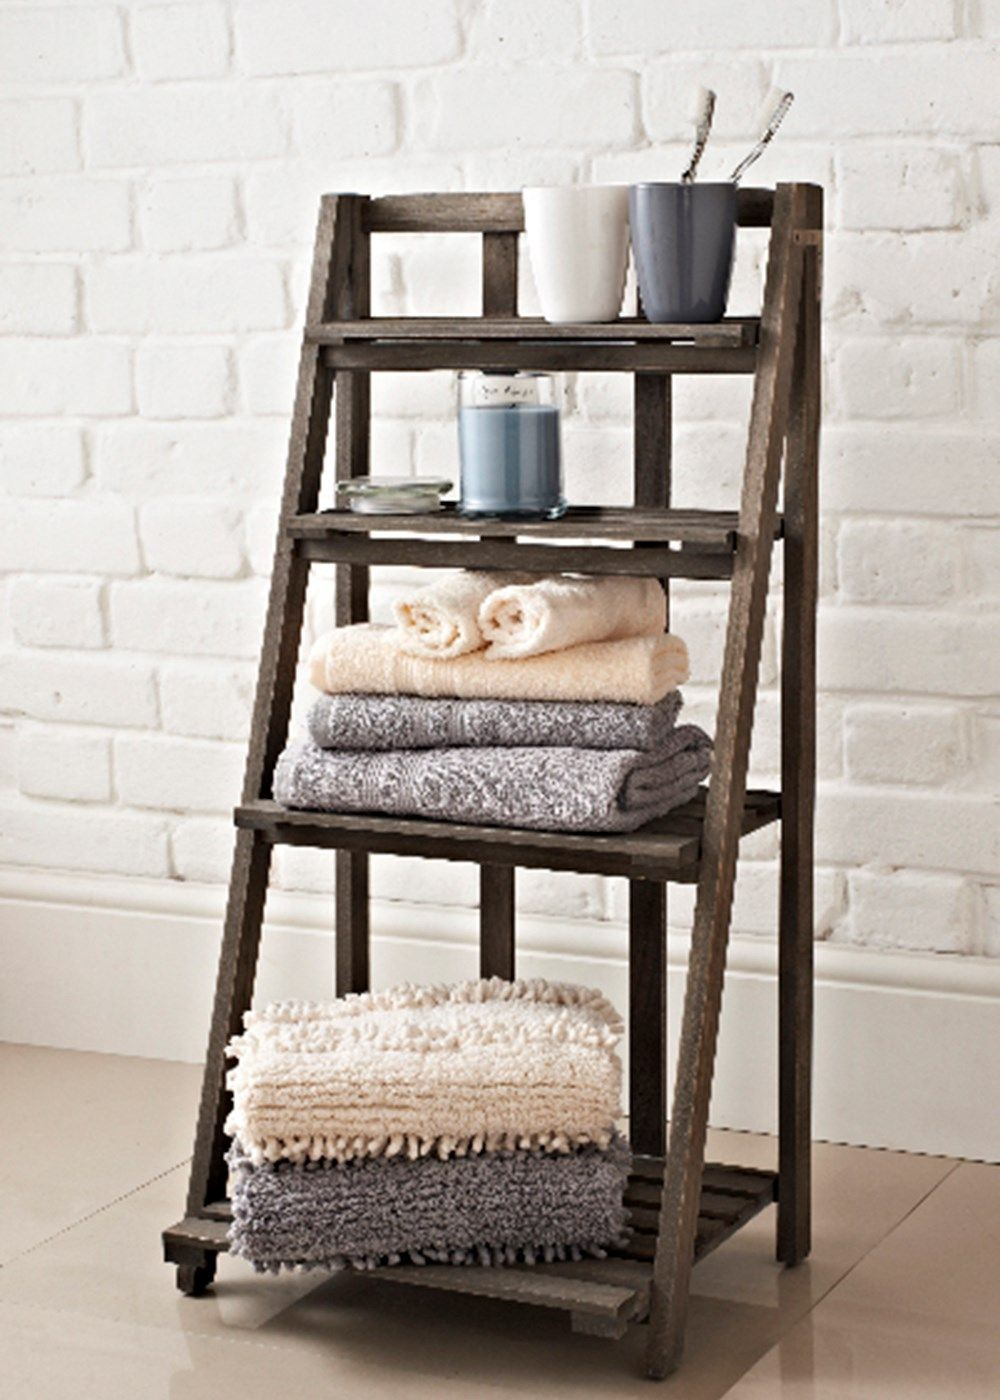 Slatted Bathroom Shelving Ladder Unit 40cm X 30cm X 80cm View 2 Shelves Bathroom Shelves Decor